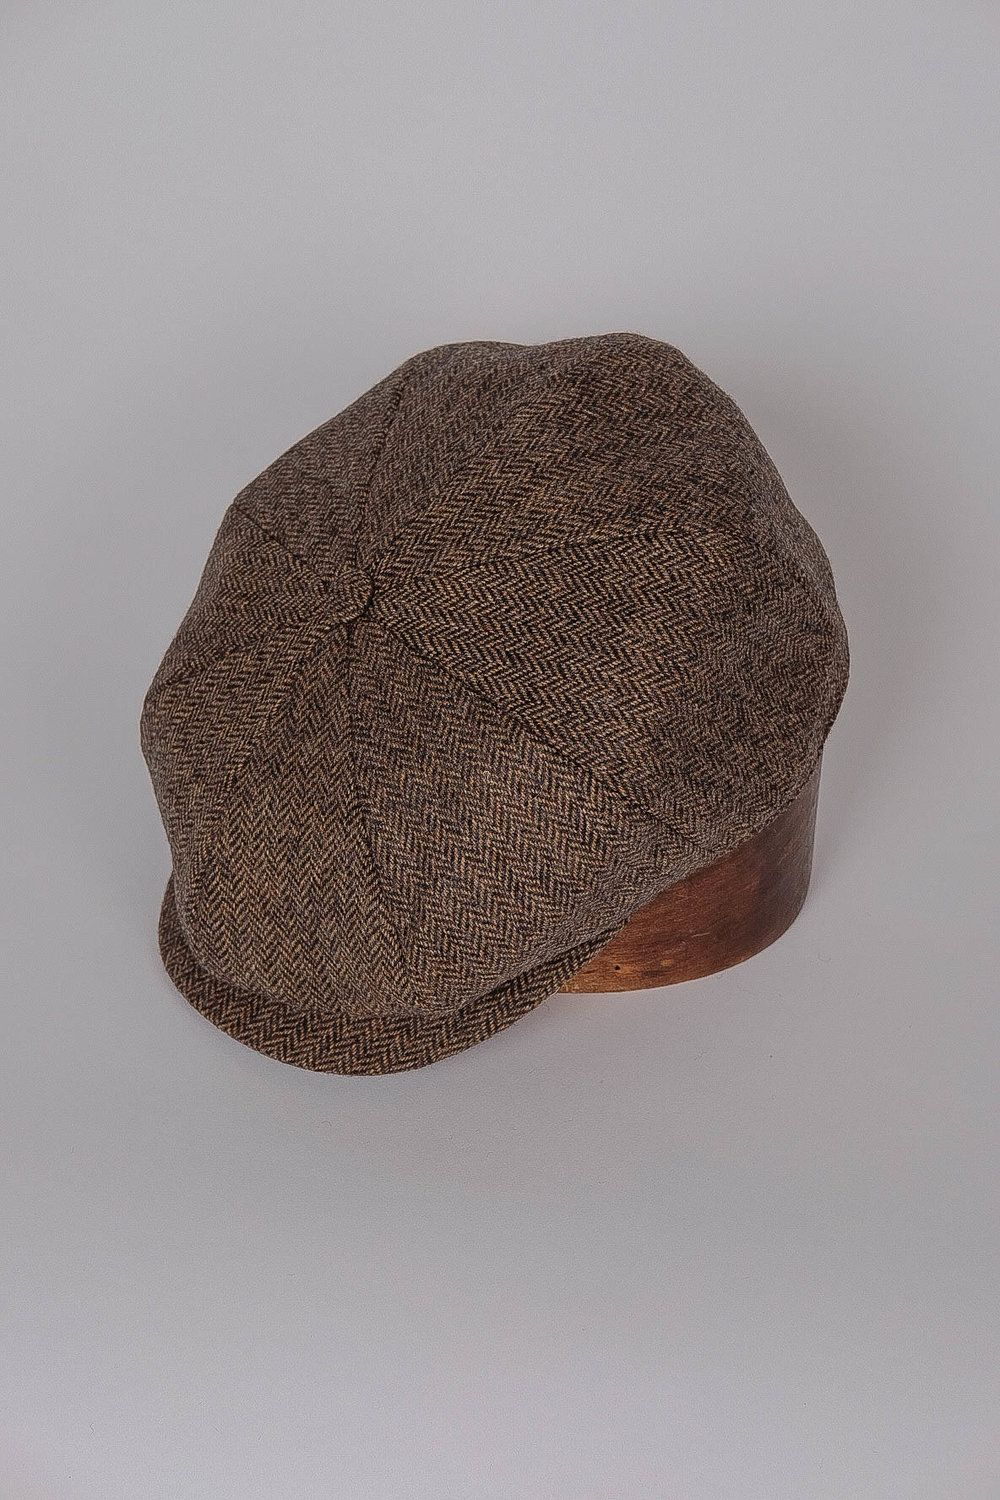 896d8ebde Wyler Baker Boy - Light Brown | Τραγιάσκα | Baker boy cap, Baker boy ...